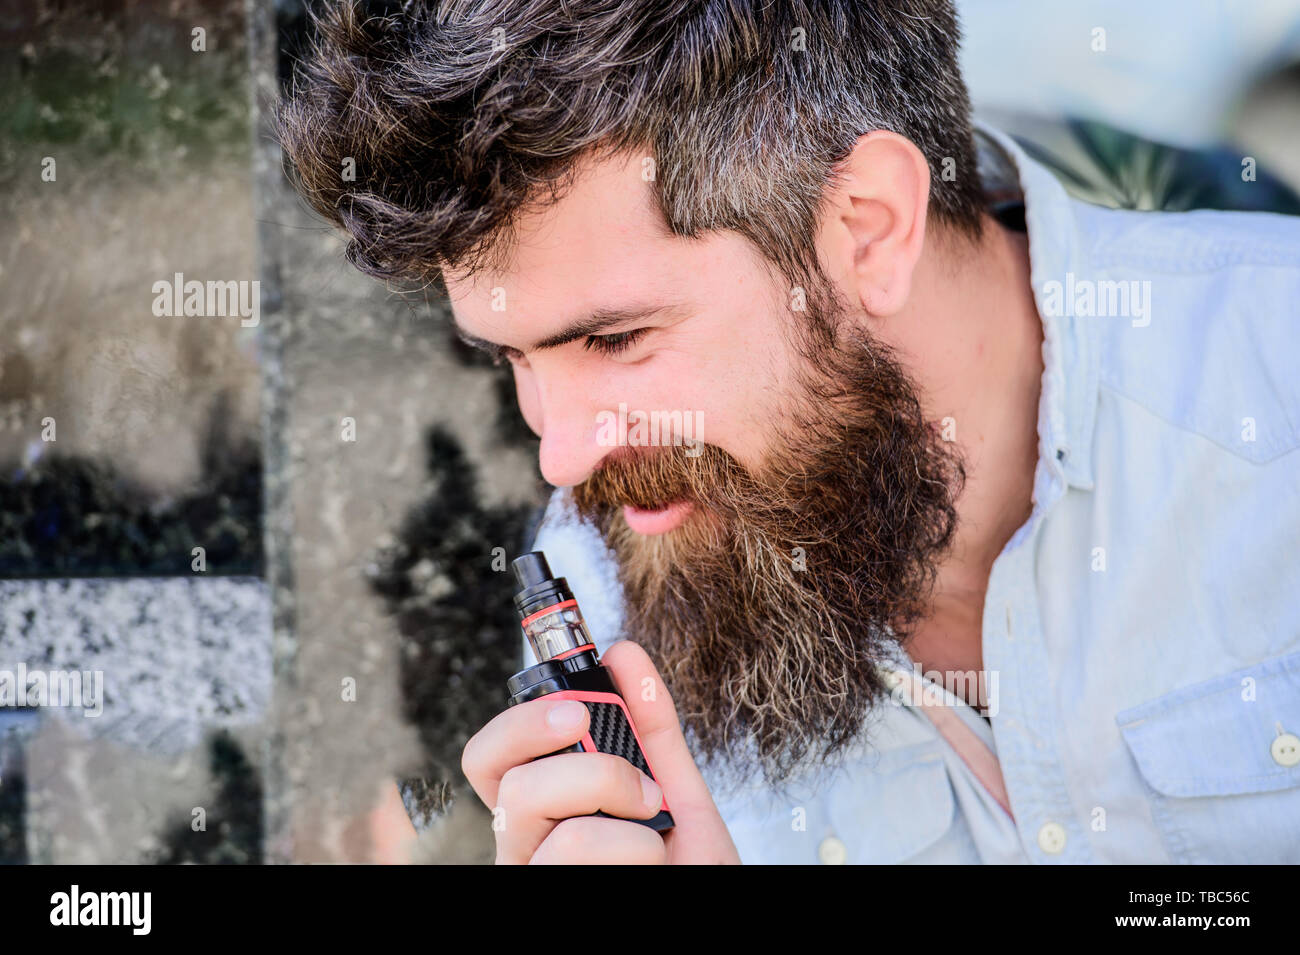 Mature hipster with beard. Bearded brutal male smoking electronic cigarette. man smoking e-cigarette. hipster man hold vaping device. Health safety and addiction. inhaling vapor. Man smoking. - Stock Image